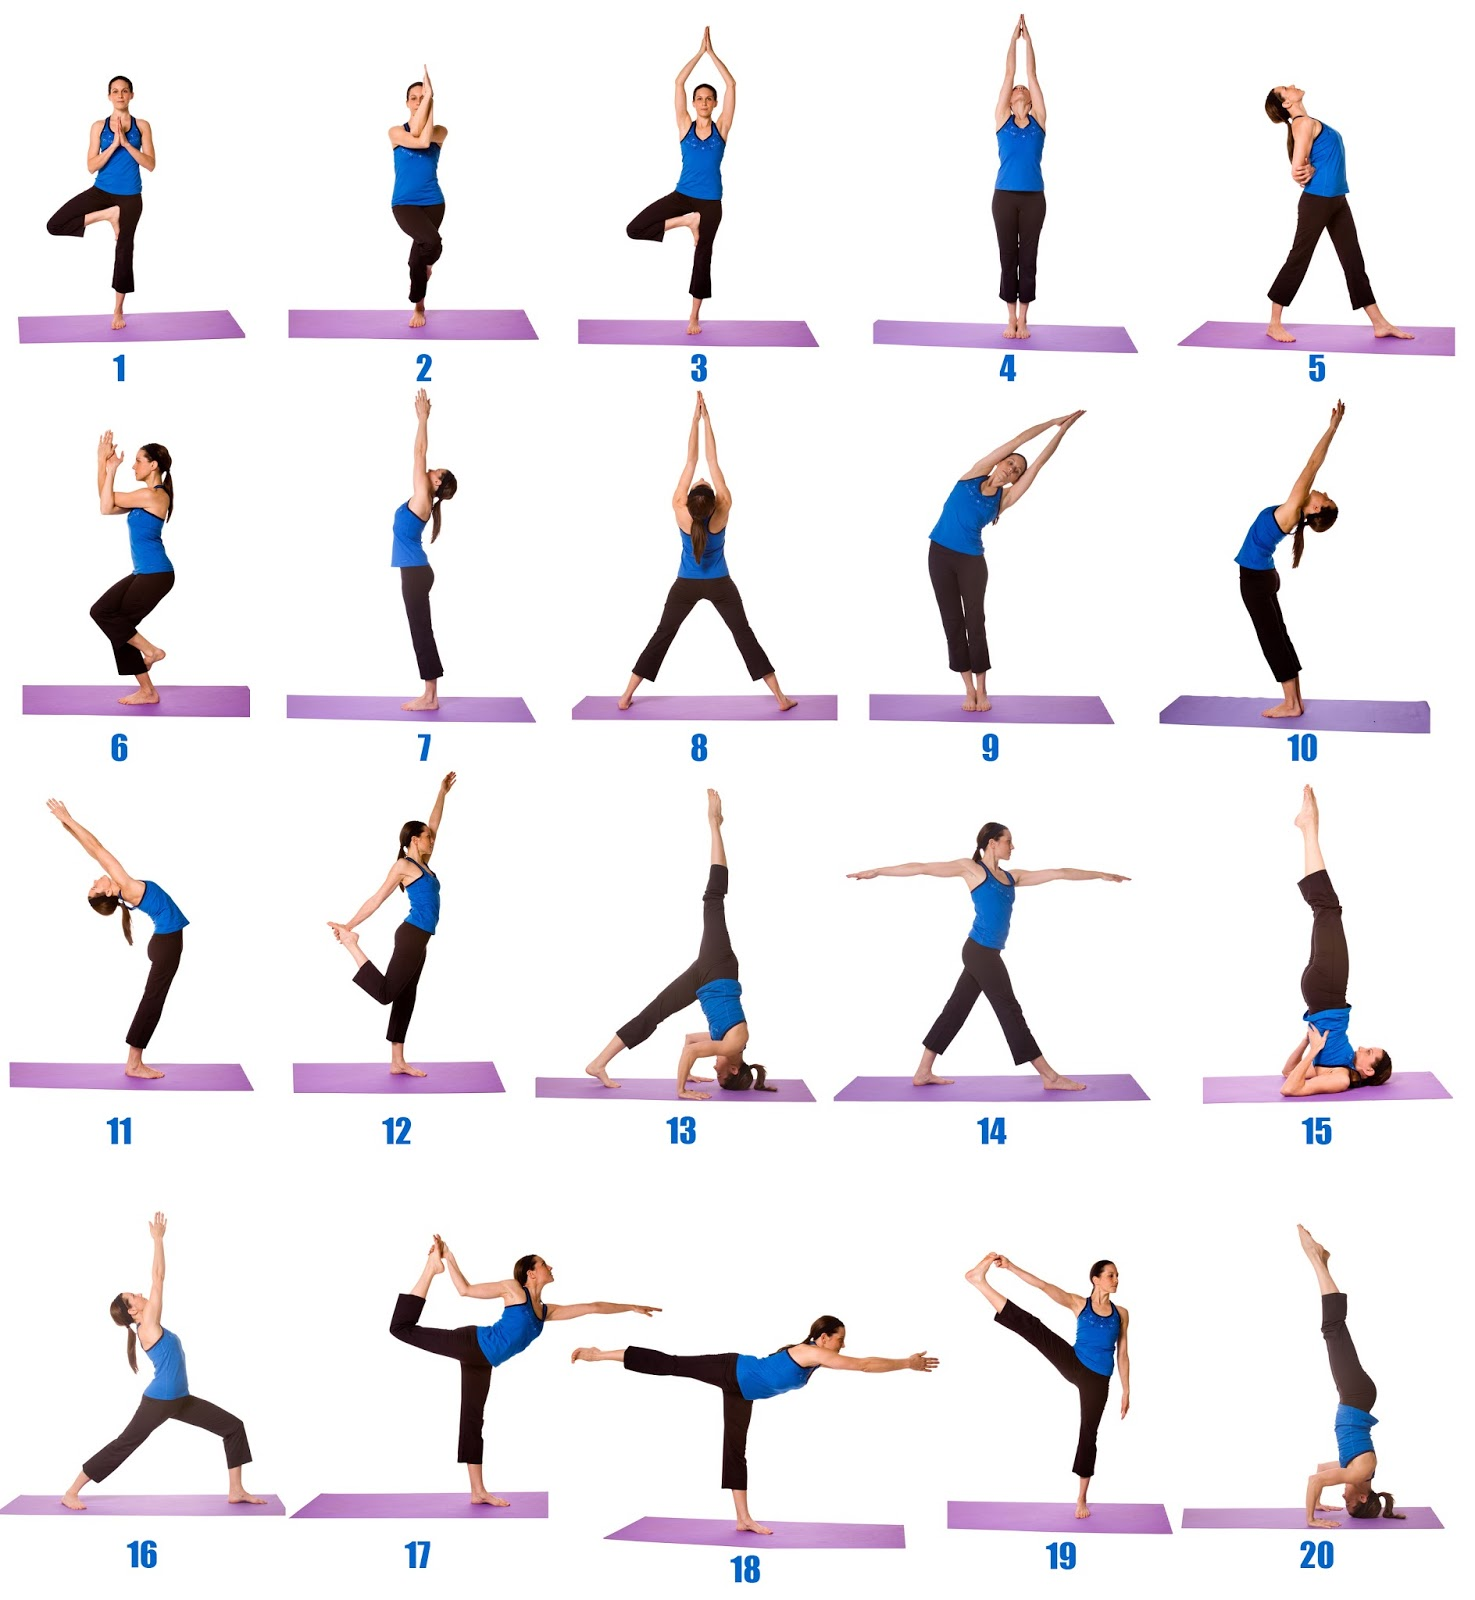 Yoga Can Help You Sleep Deeper Is Vital To Our Overall Health And Getting Proper Exercise Really Helps Your Body Relax Which In Turn Lead